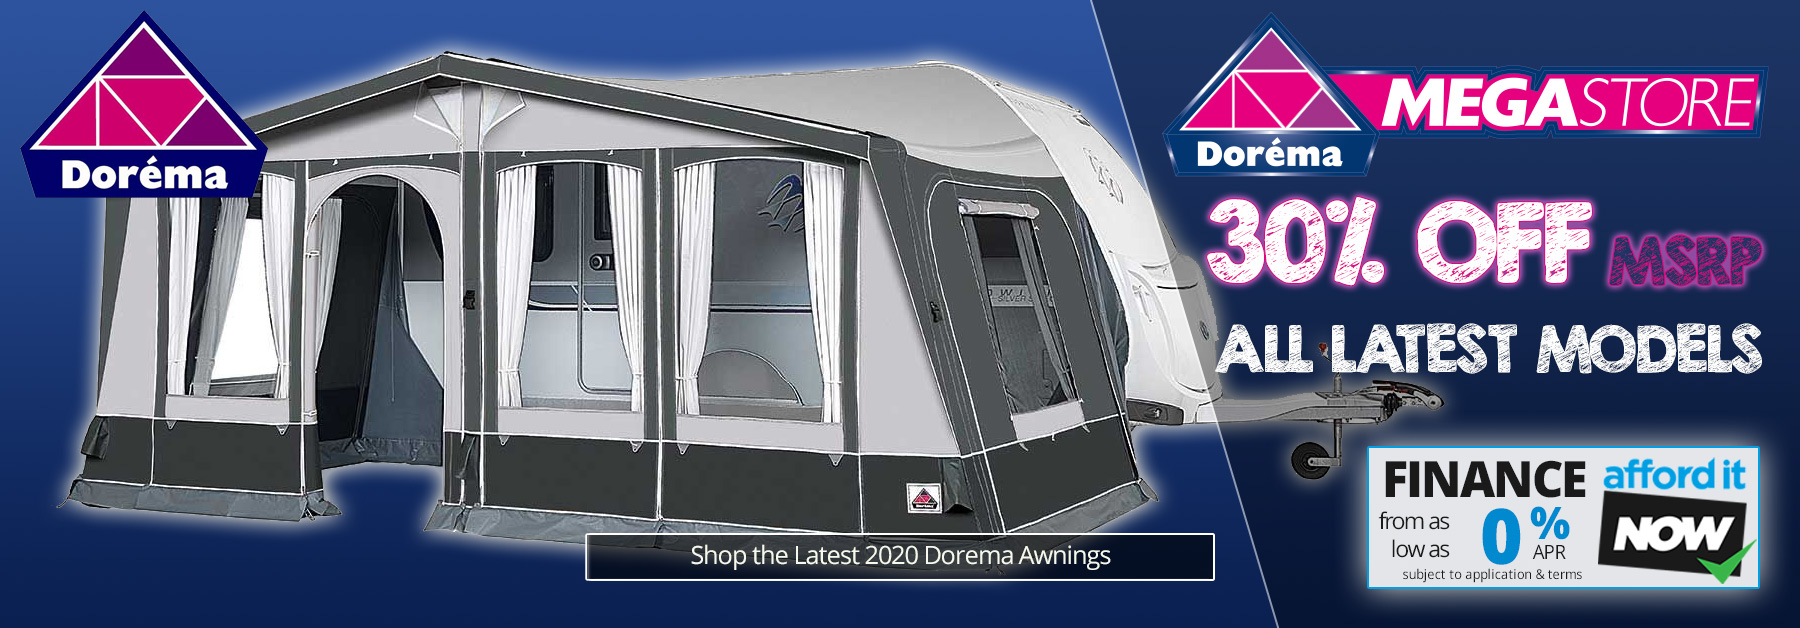 Dorema Megastore - 30% off MSRP of all Dorema Awnings